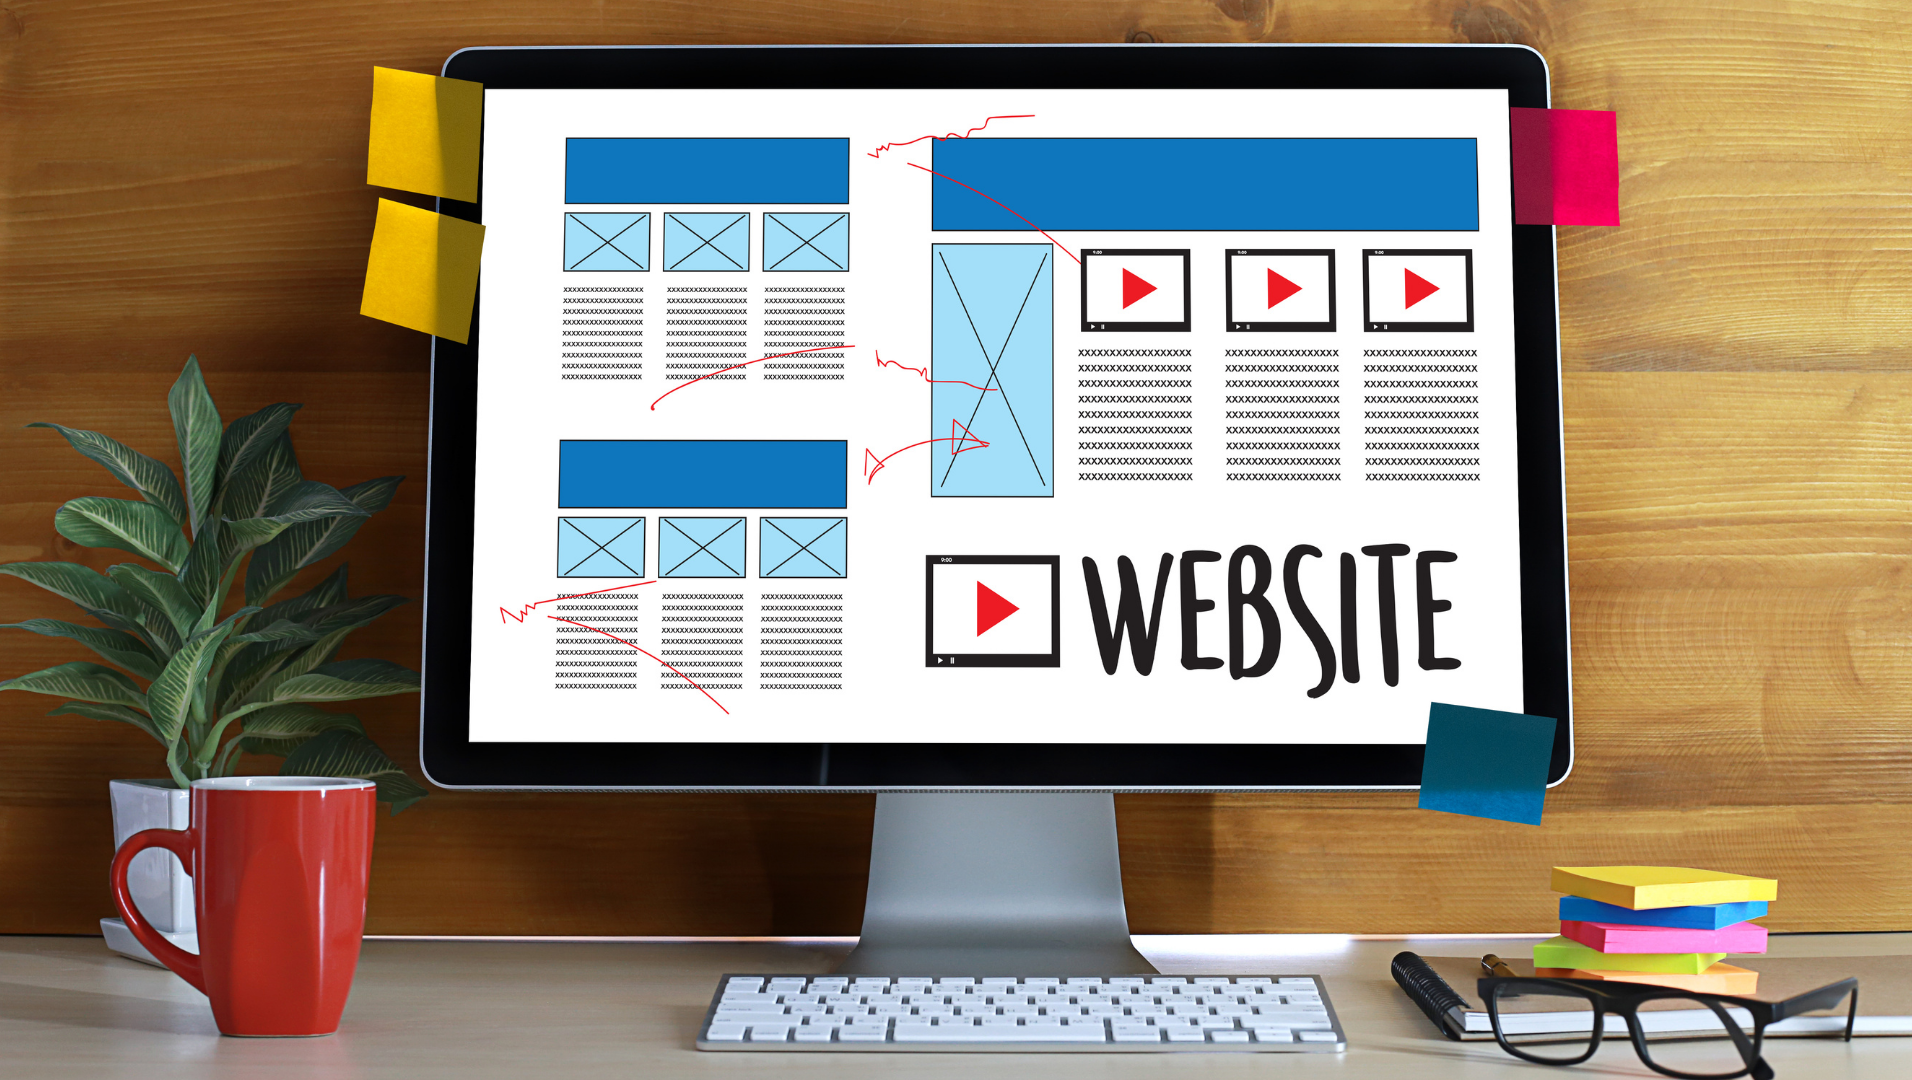 Create an Excellent Website That Drives Conversions